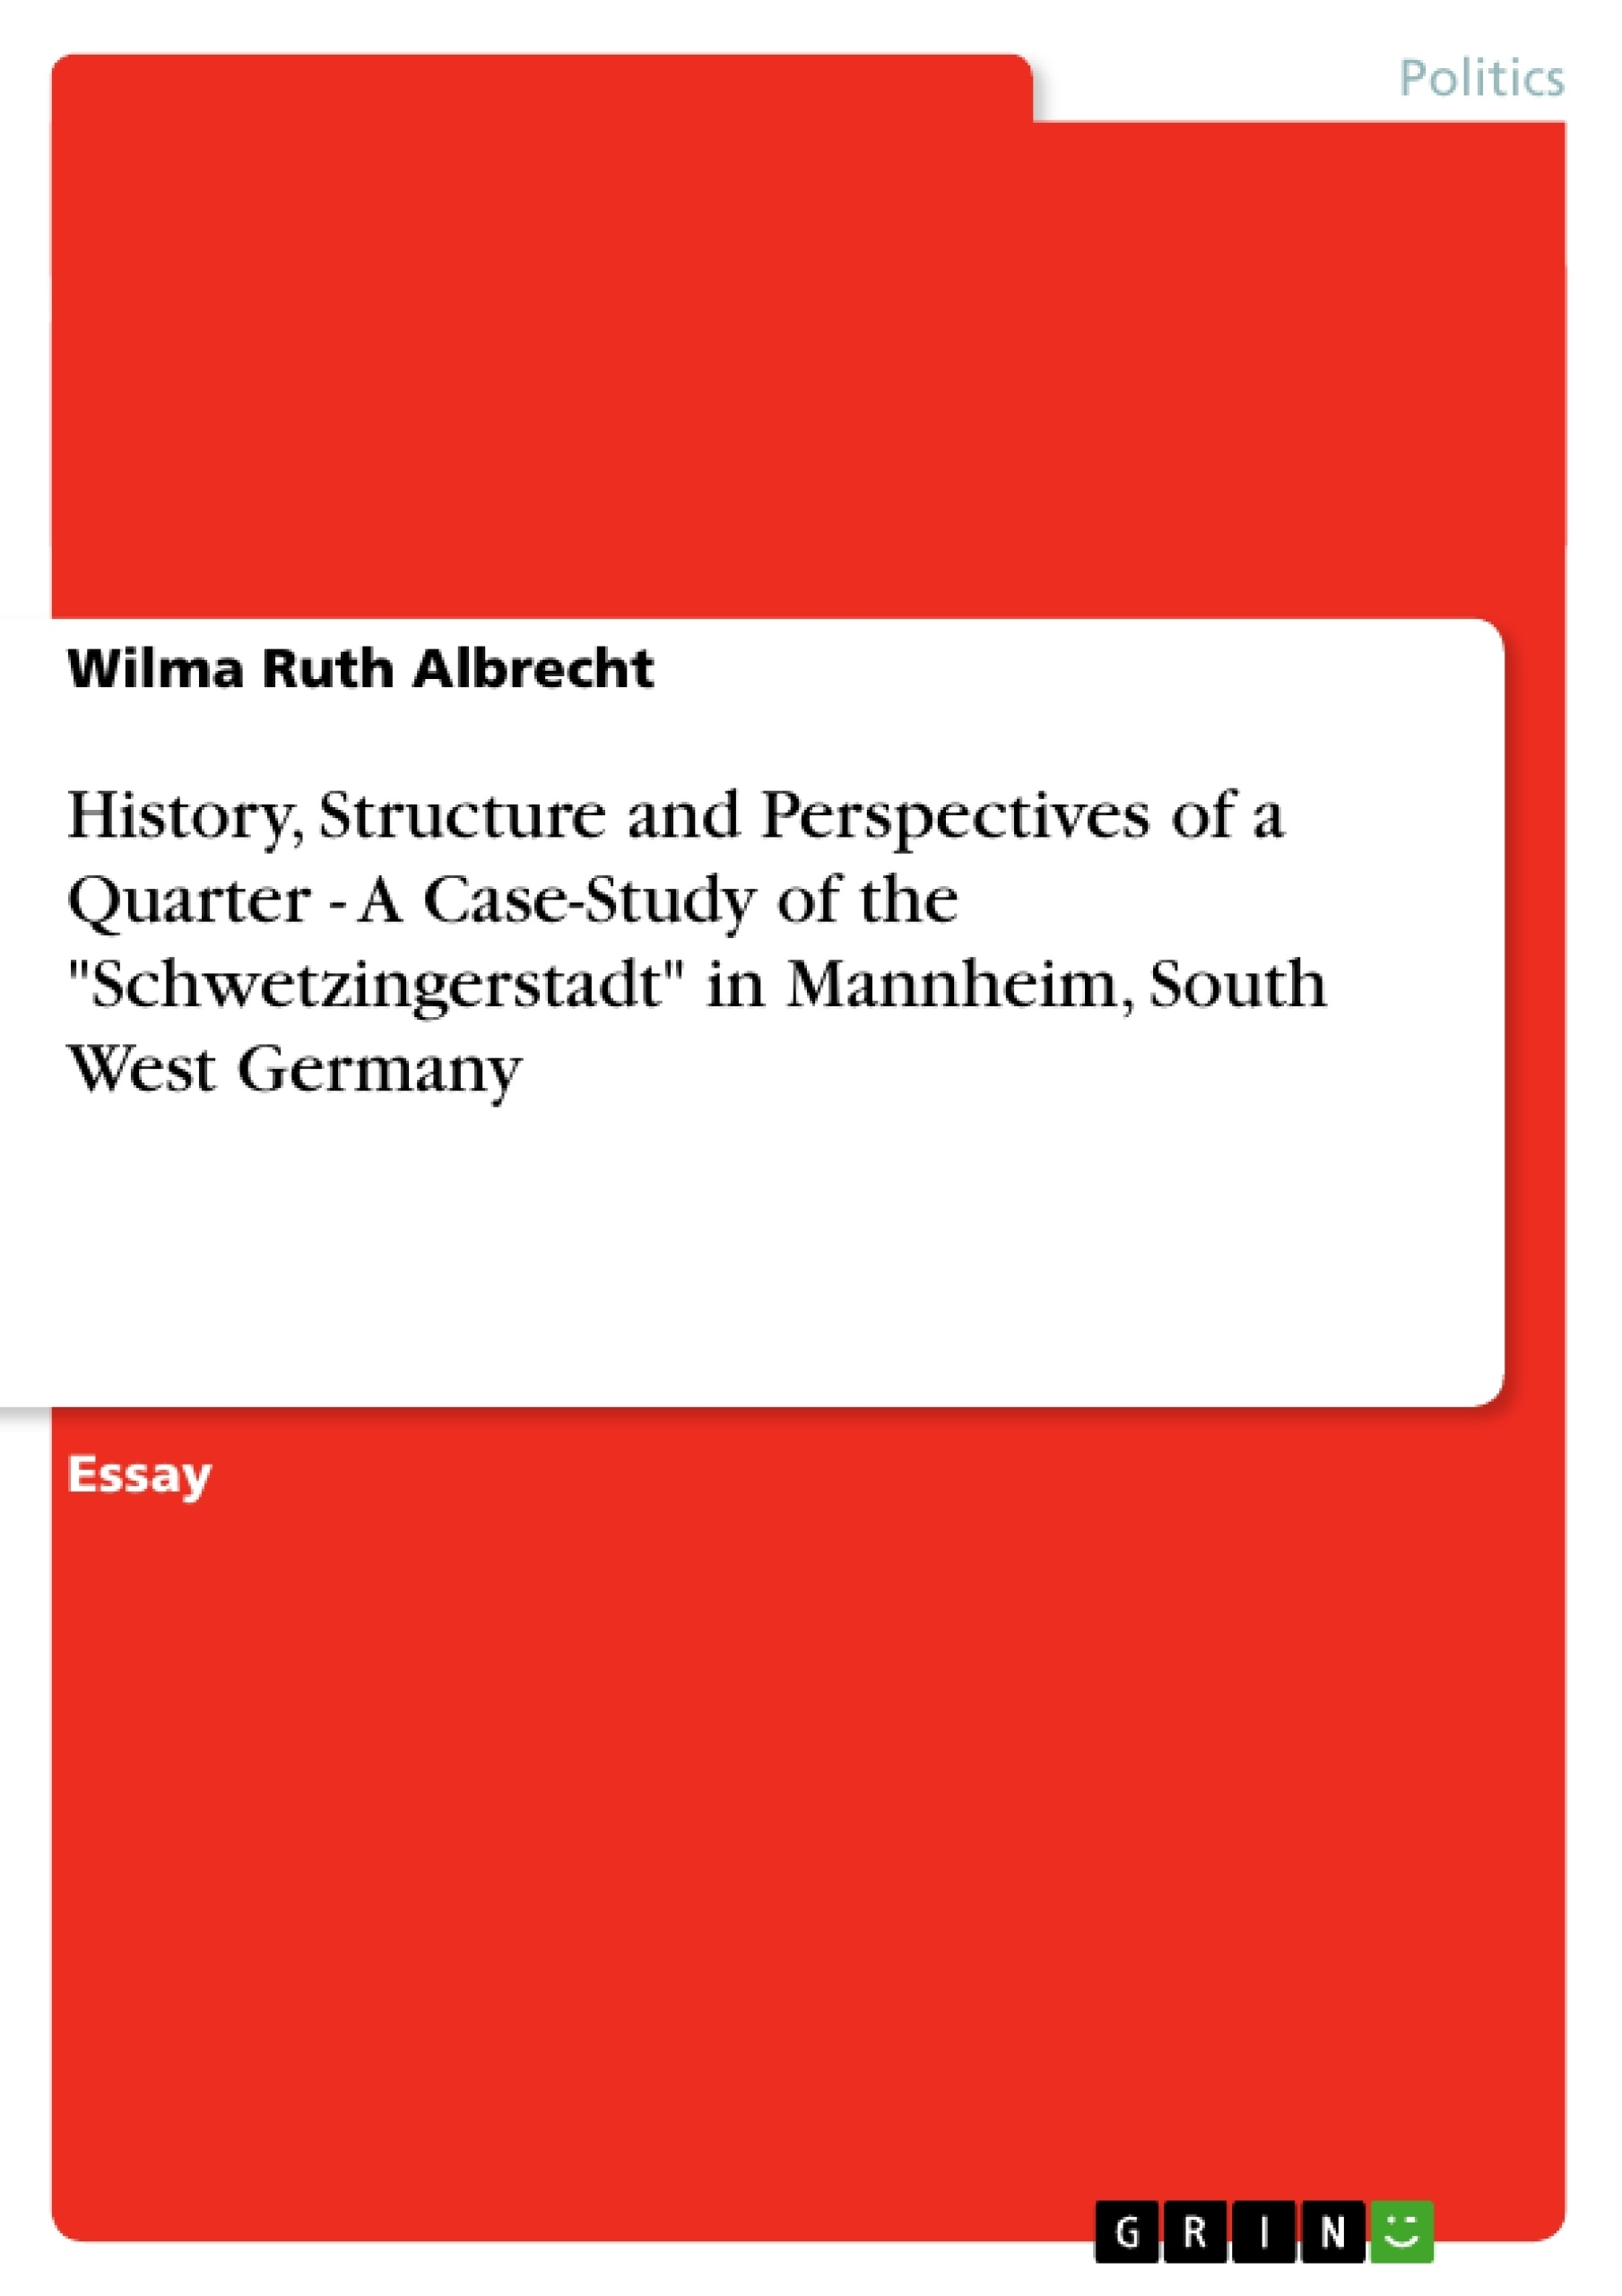 """Title: History, Structure and Perspectives of a Quarter - A Case-Study of the """"Schwetzingerstadt"""" in Mannheim, South West Germany"""